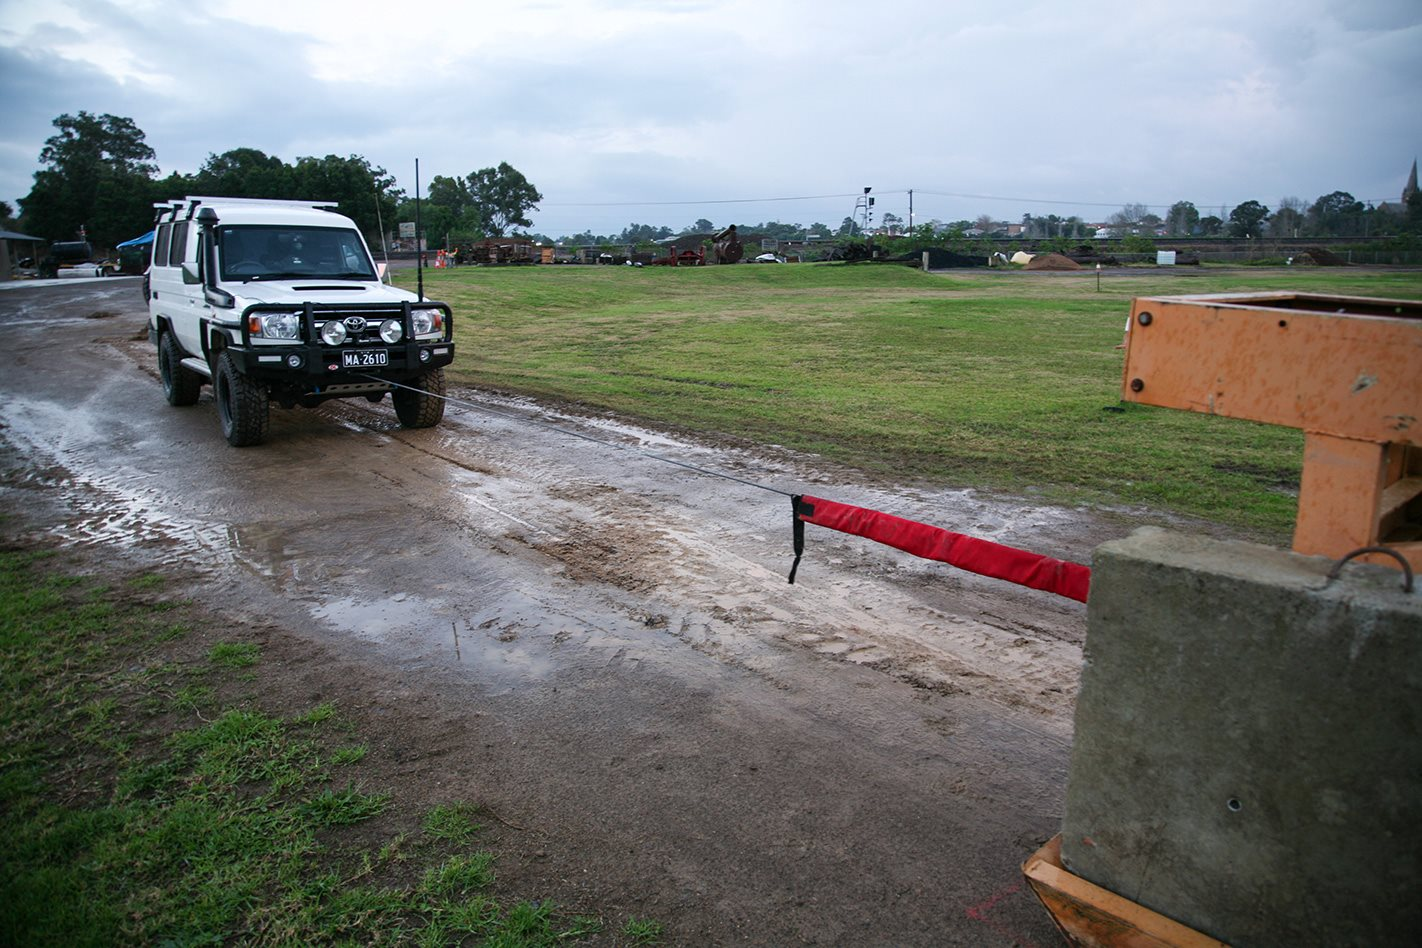 winch recovery testing on Toyota Land Cruiser